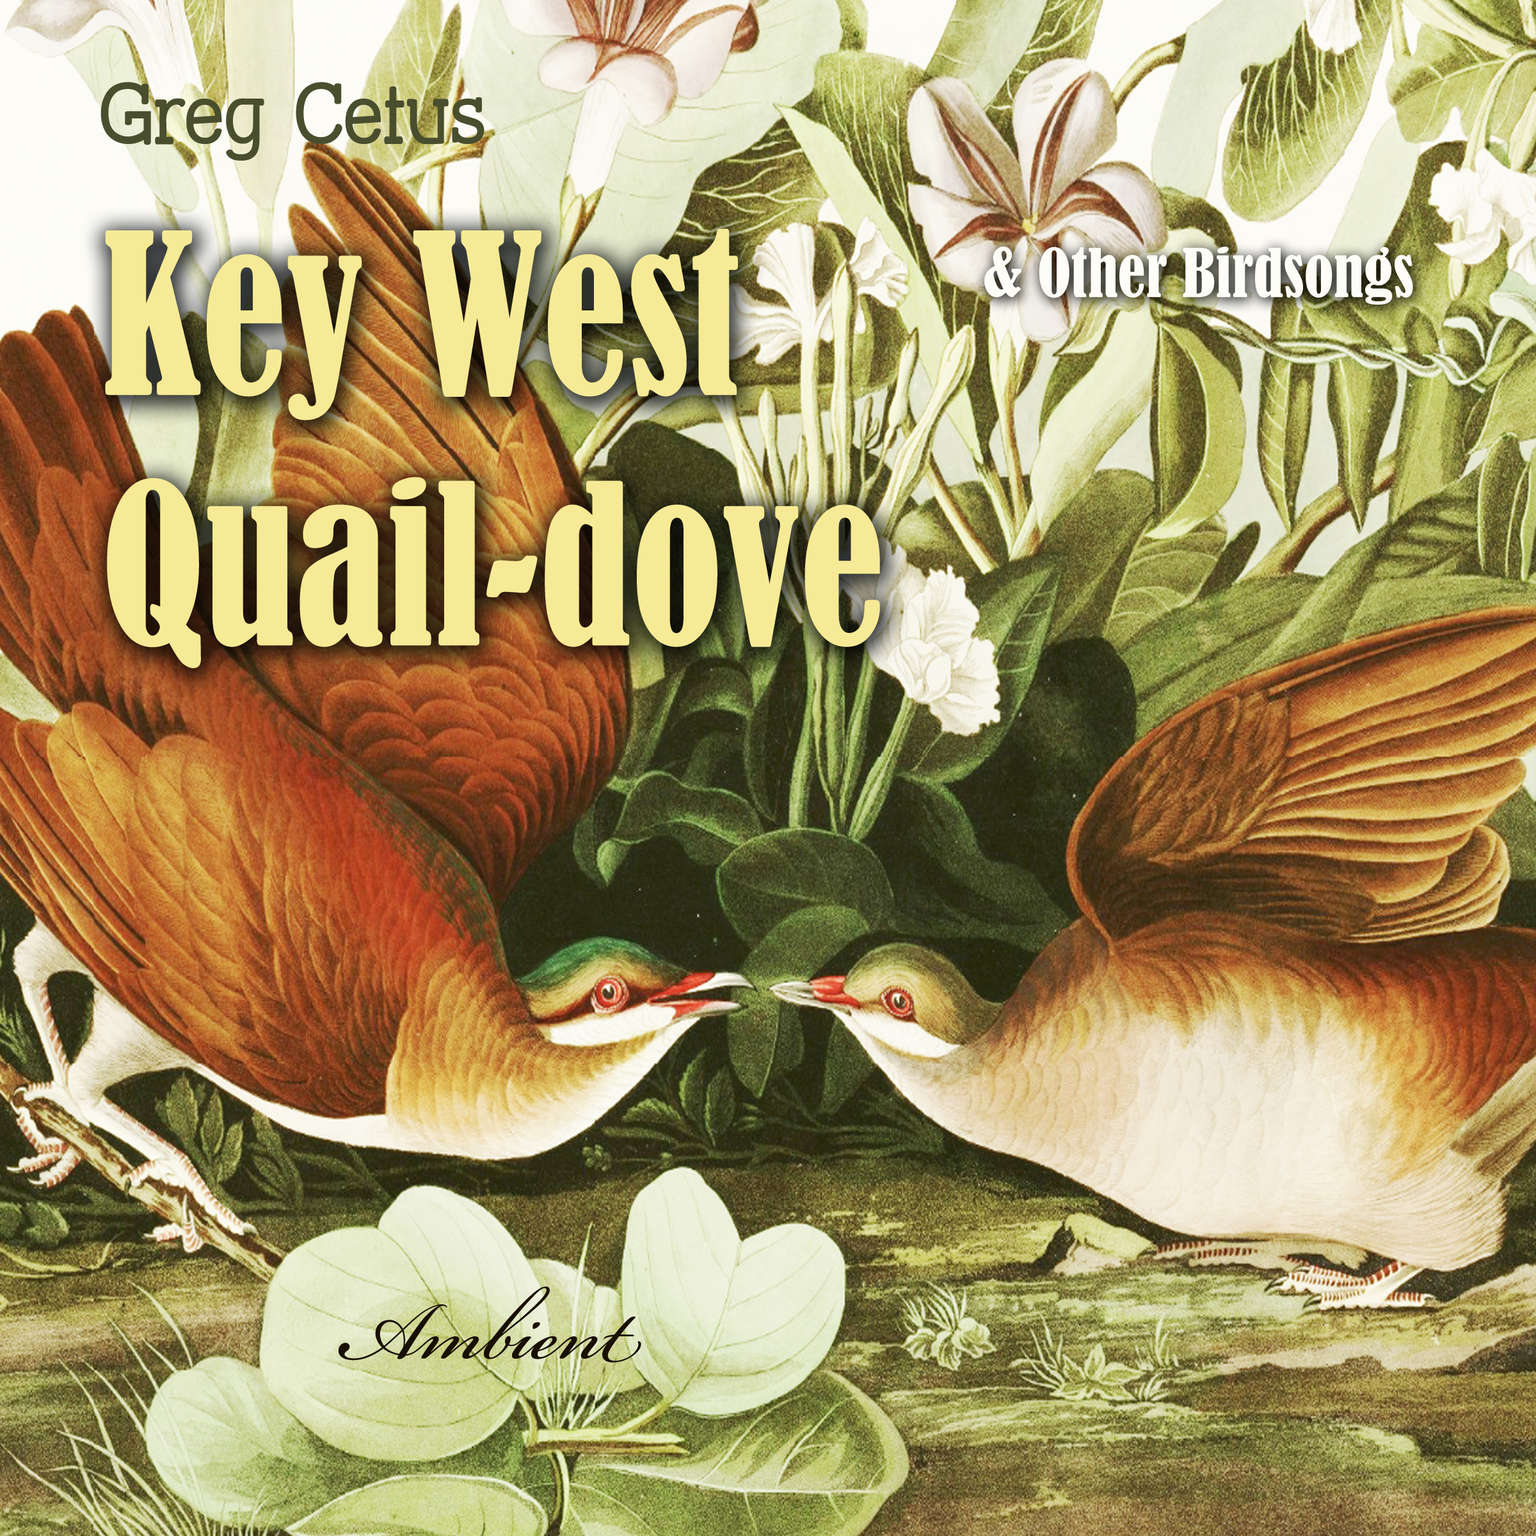 Key West Quail-dove and Other Birdsongs Audiobook, by Greg Cetus